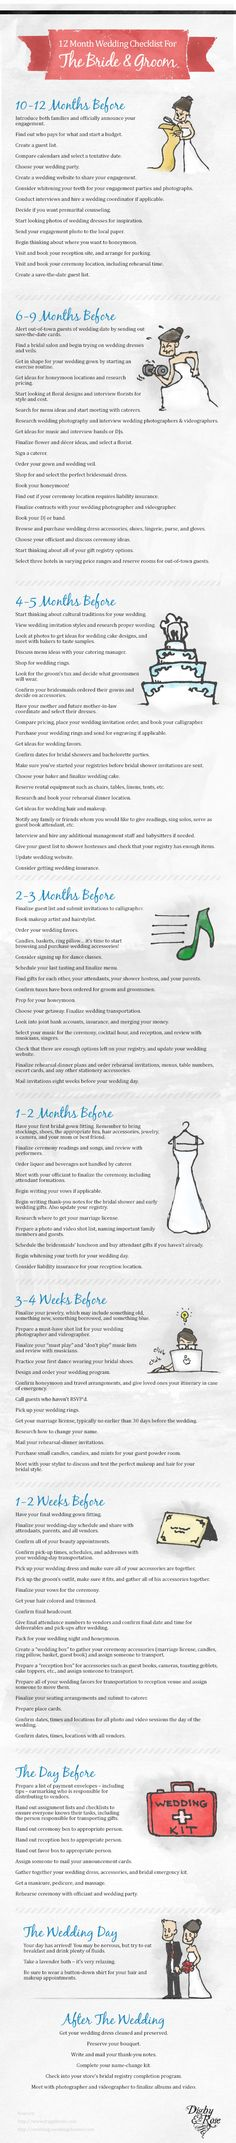 the BEST list:12 month wedding planning checklist